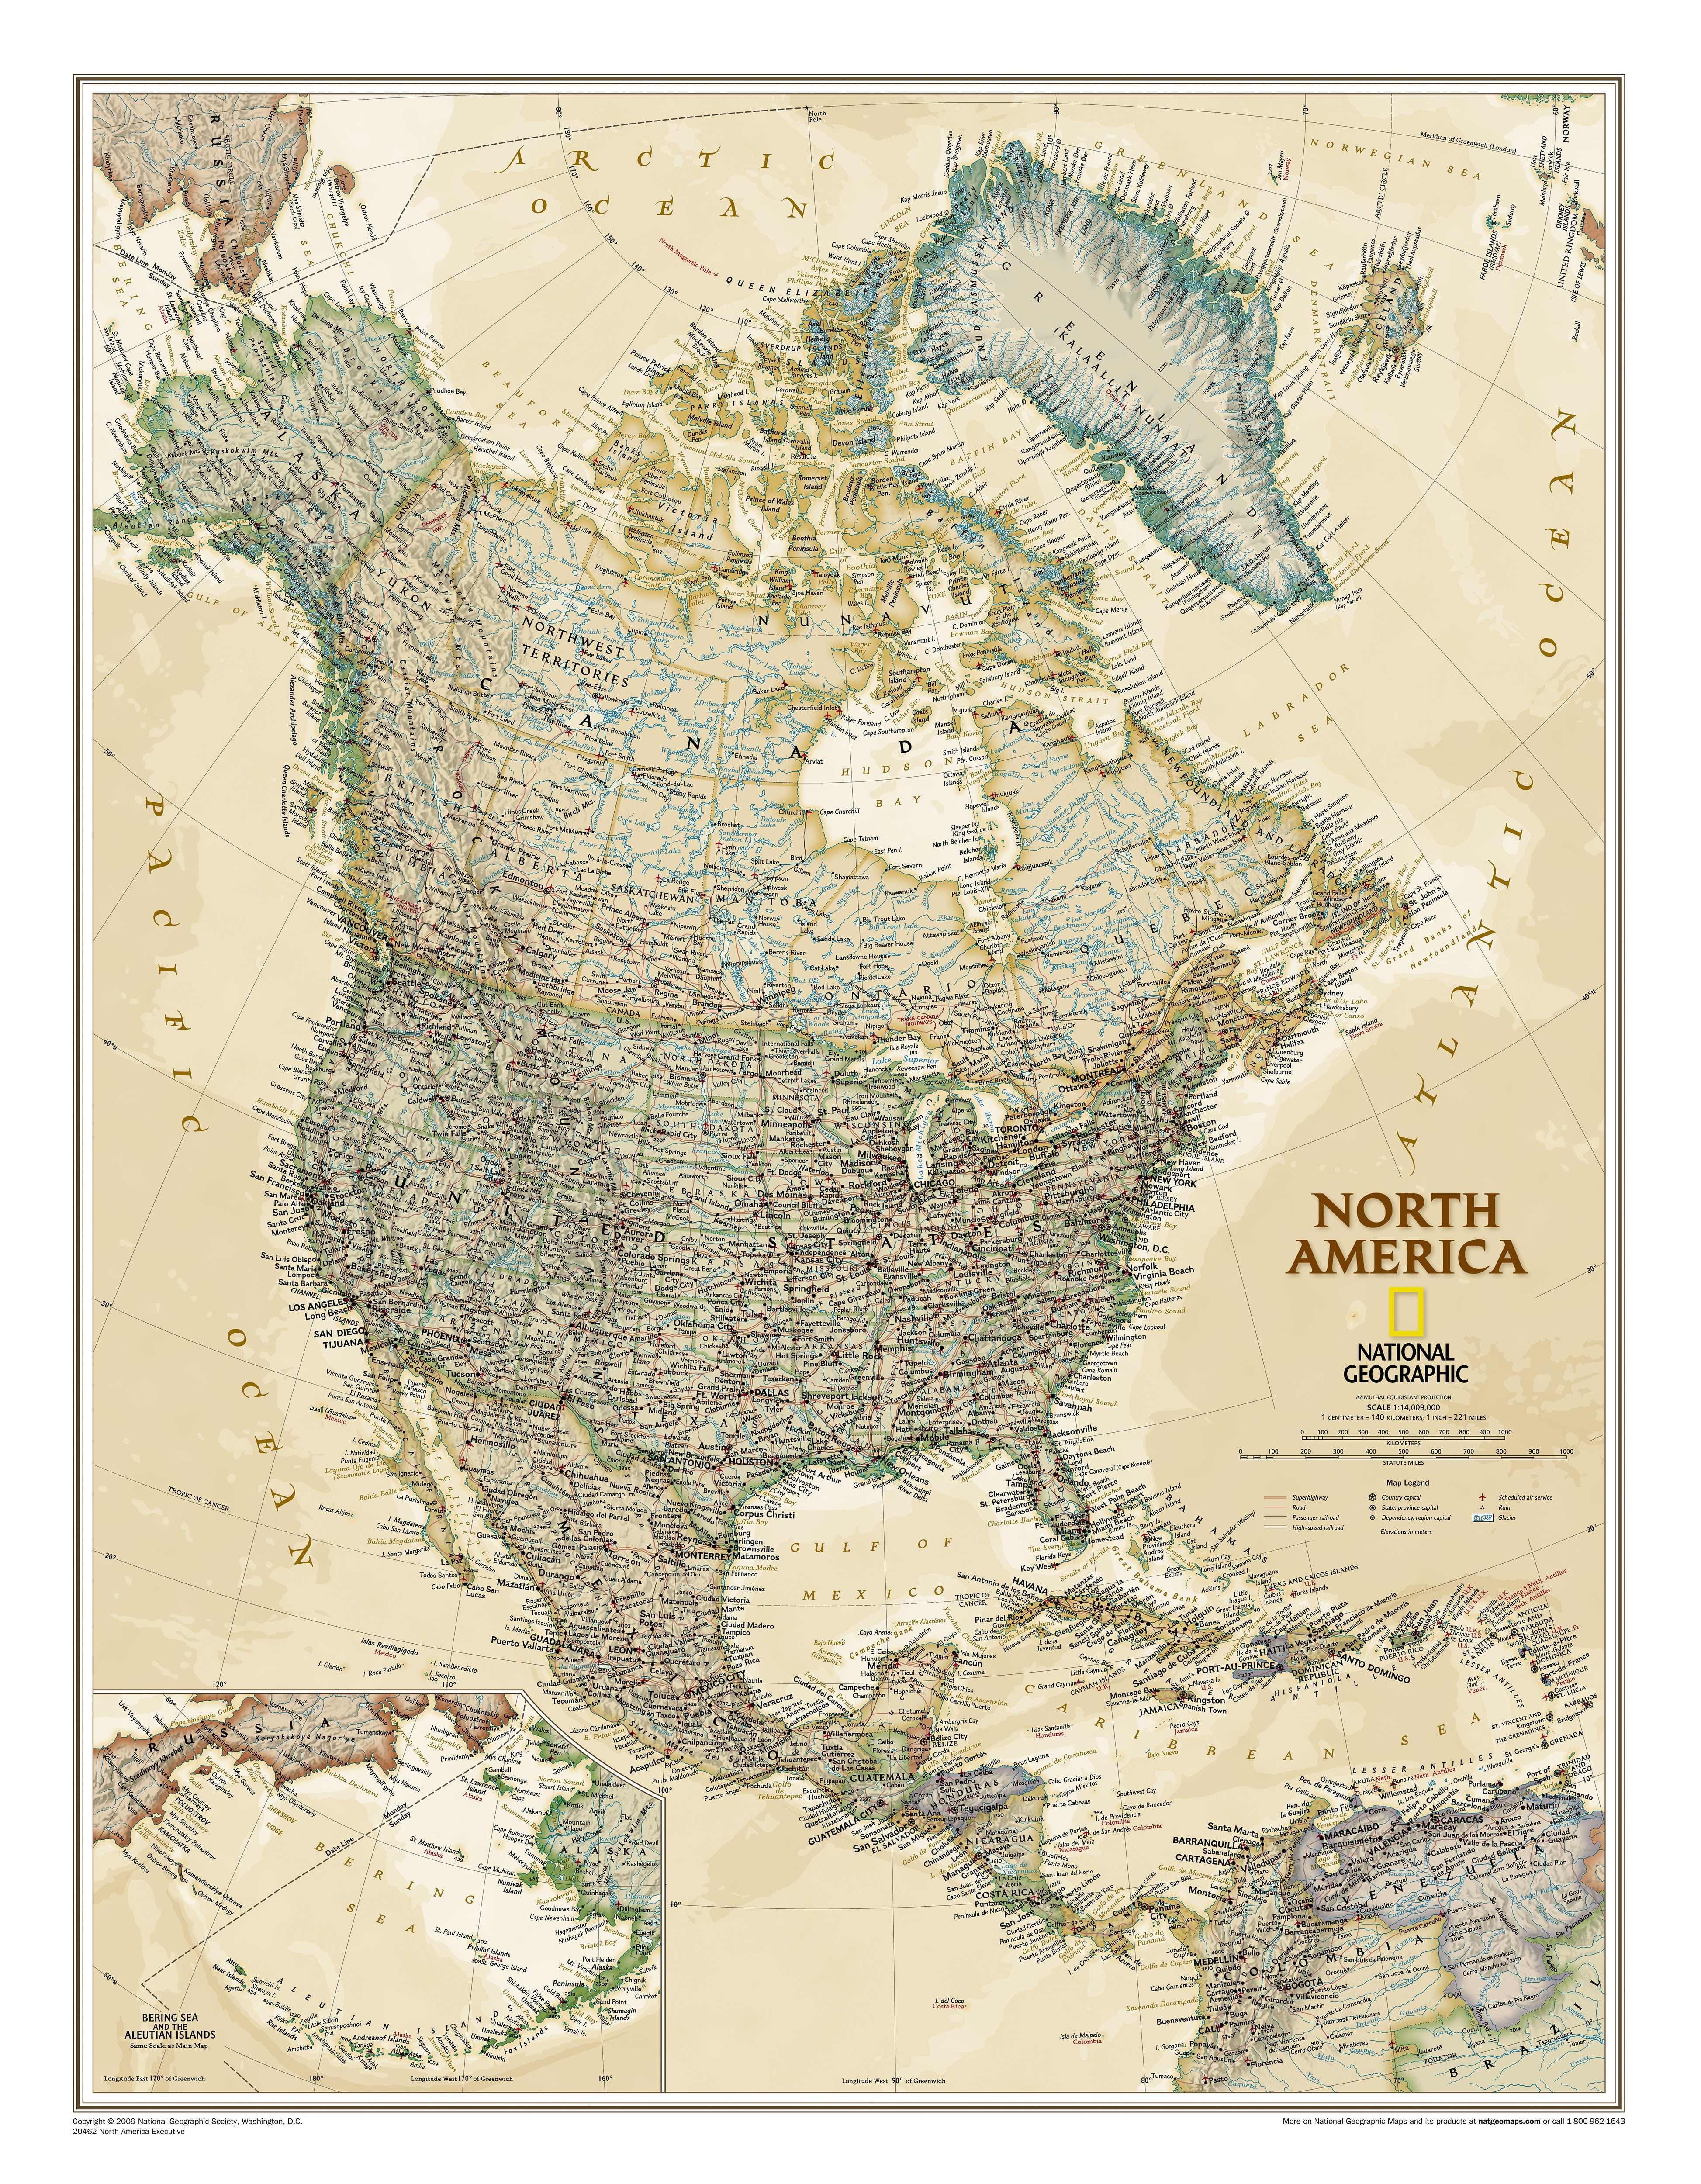 Executive North America Wall Map 61 x 76cm - Northamerica Continent ...